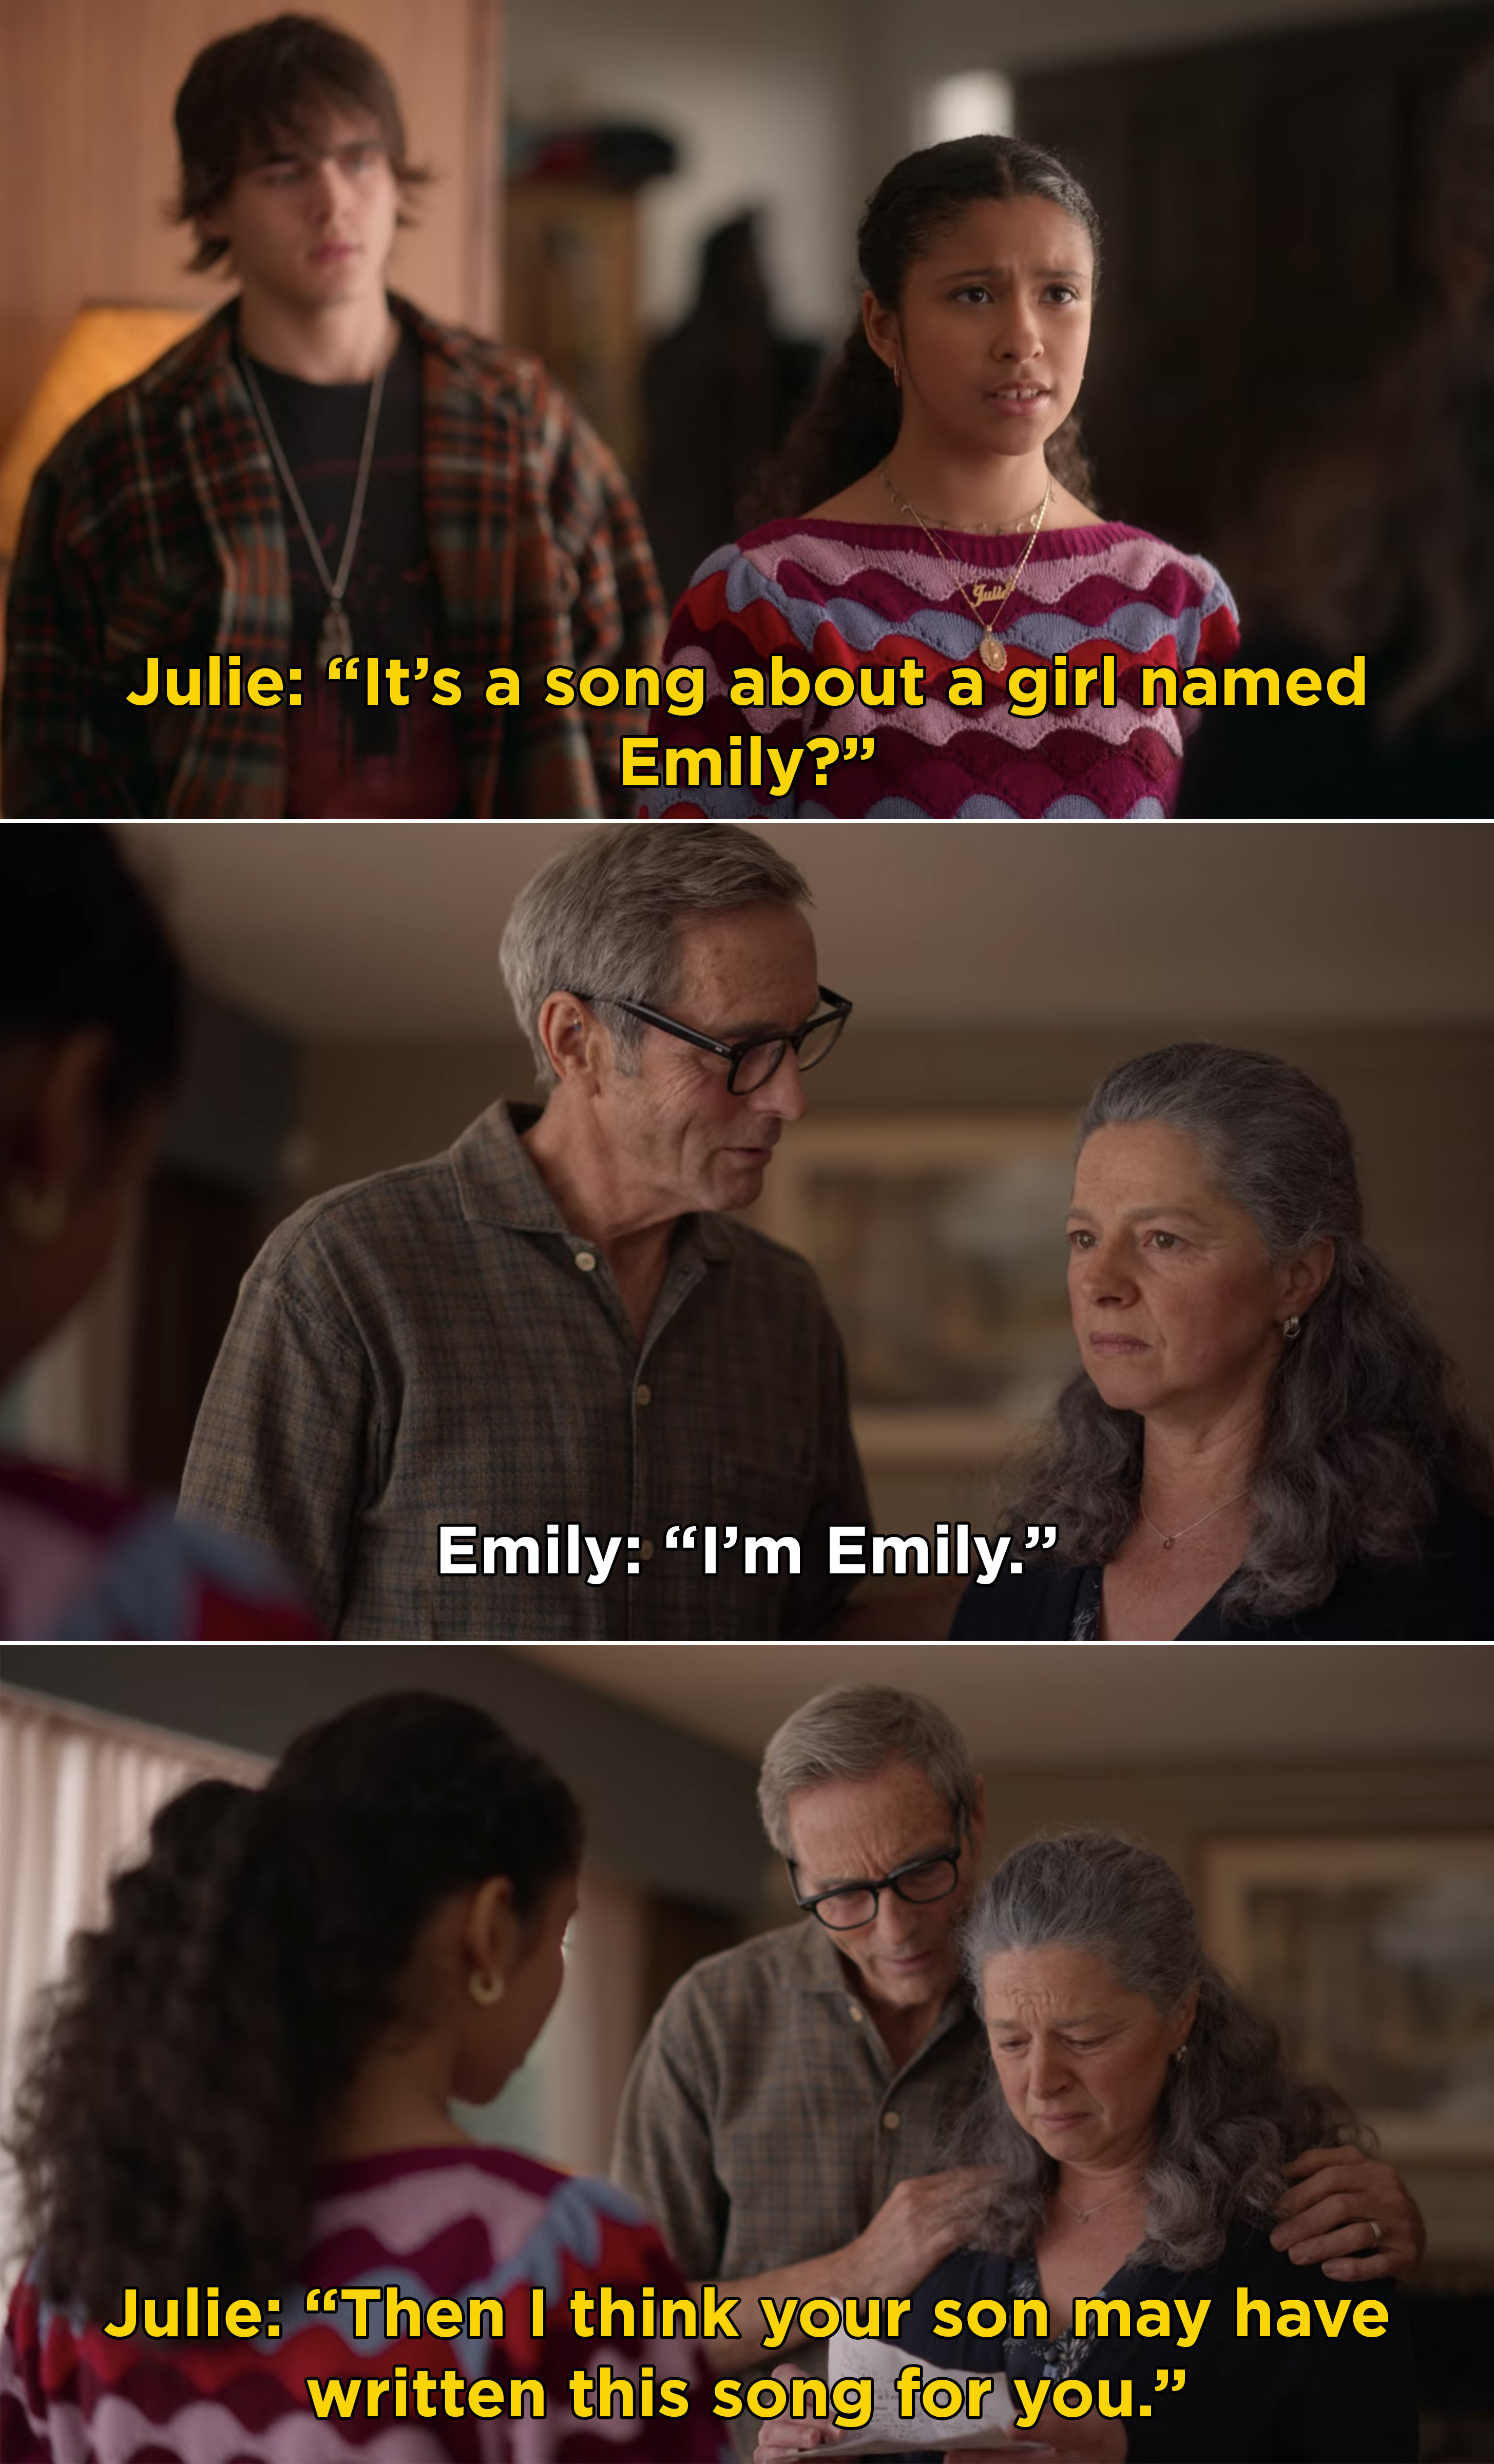 Julie telling Luke's parents she found a song about a girl named Emily